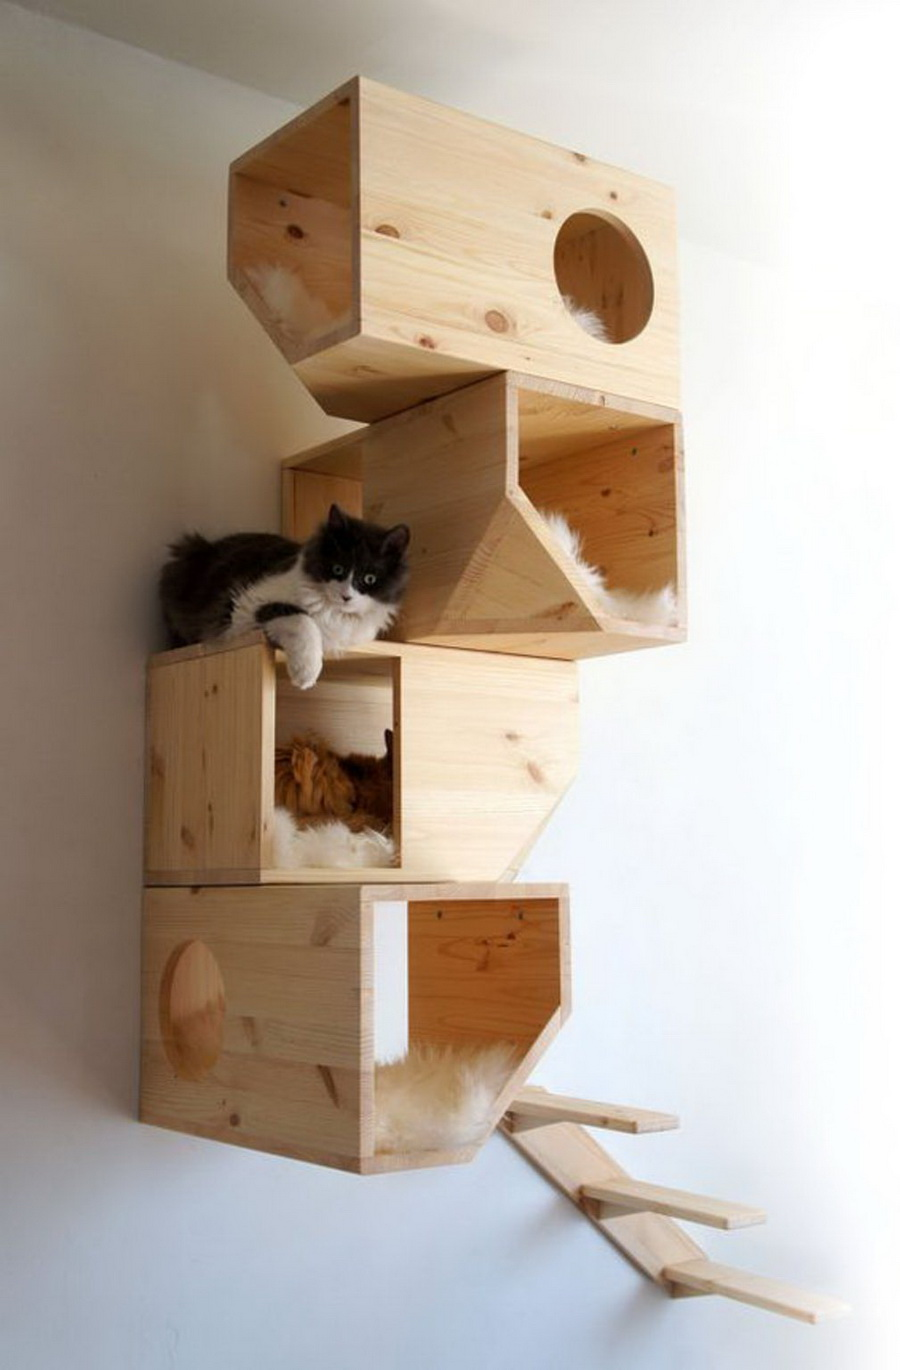 Arbre-a-chat-box.jpg